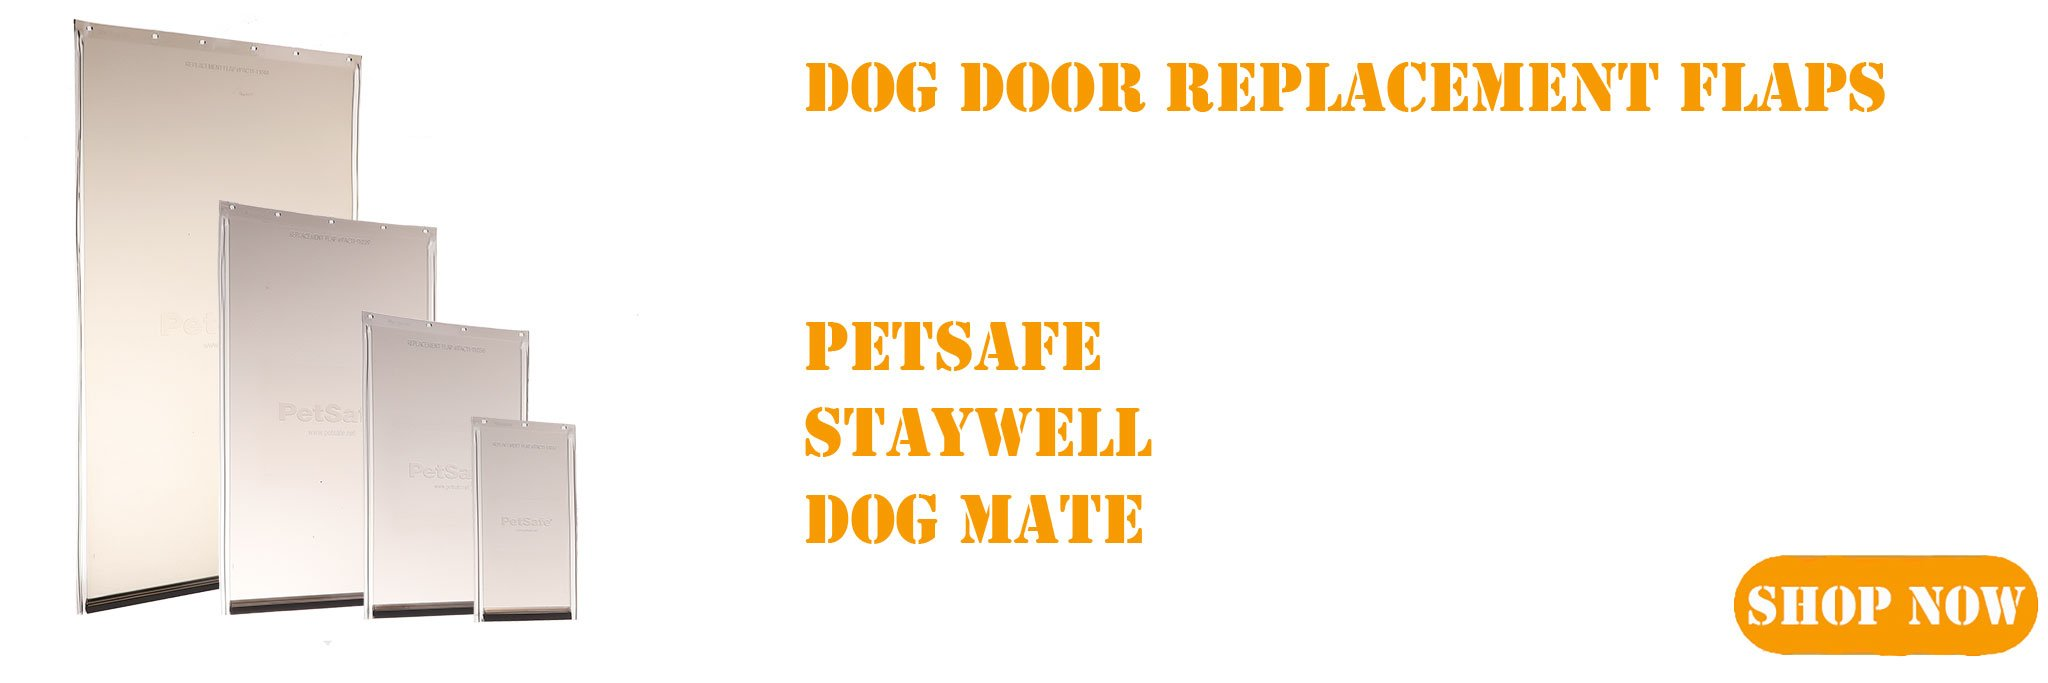 Full range of dog door replacement flaps